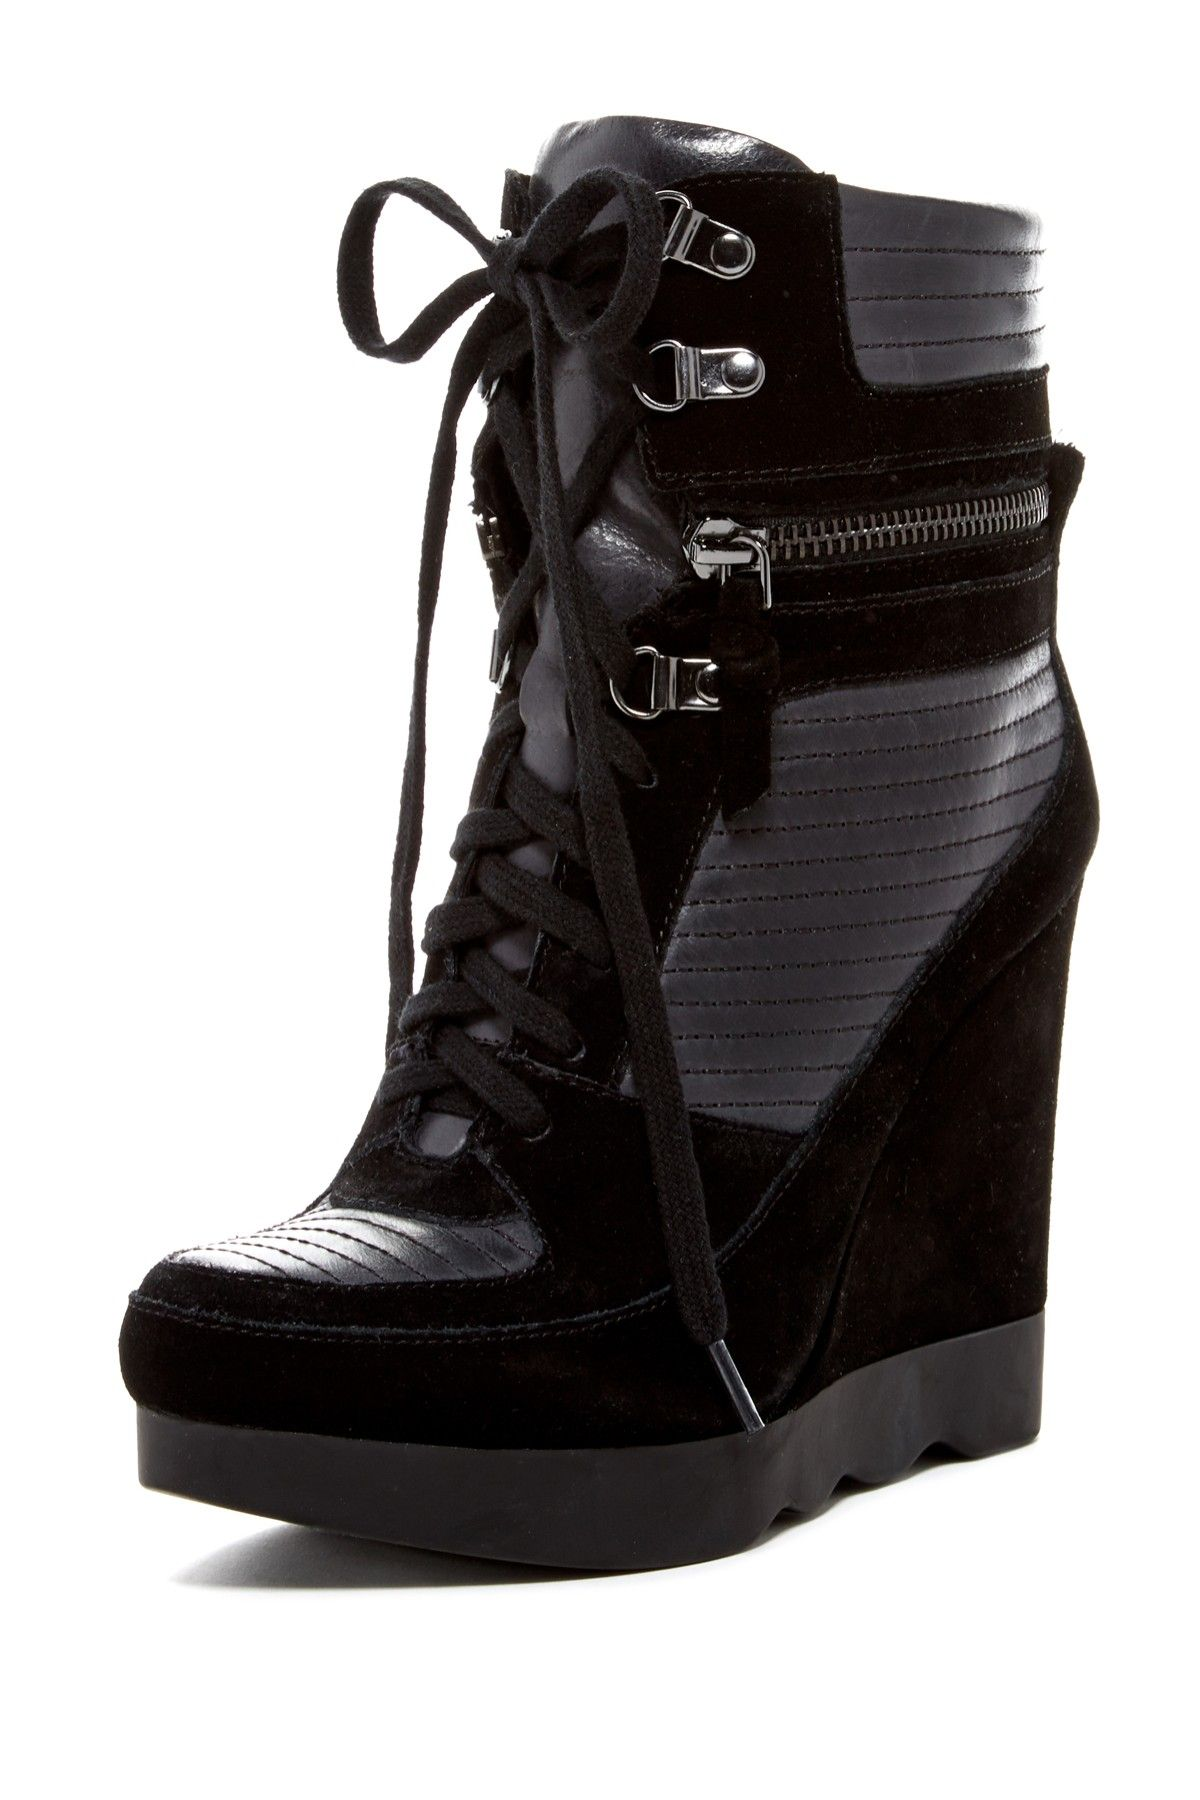 Wedge High-Top Sneaker | Shoes | Shoes, Shoe boots, Sneakers